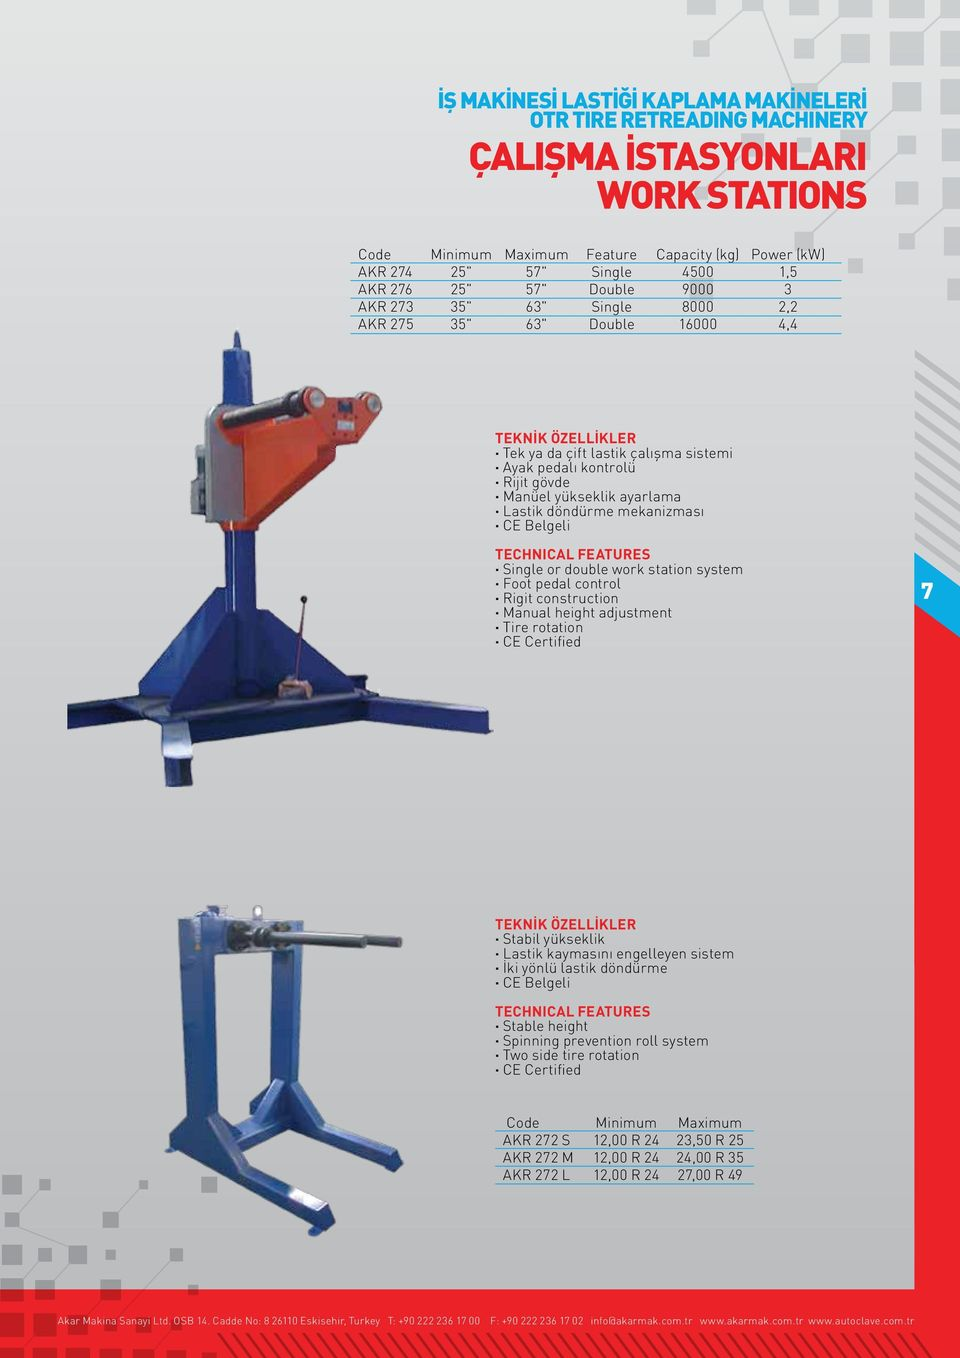 mekanizması CE Belgeli Single or double work station system Foot pedal control Rigit construction Manual height adjustment Tire rotation 7 Stabil yükseklik Lastik kaymasını engelleyen sistem İki